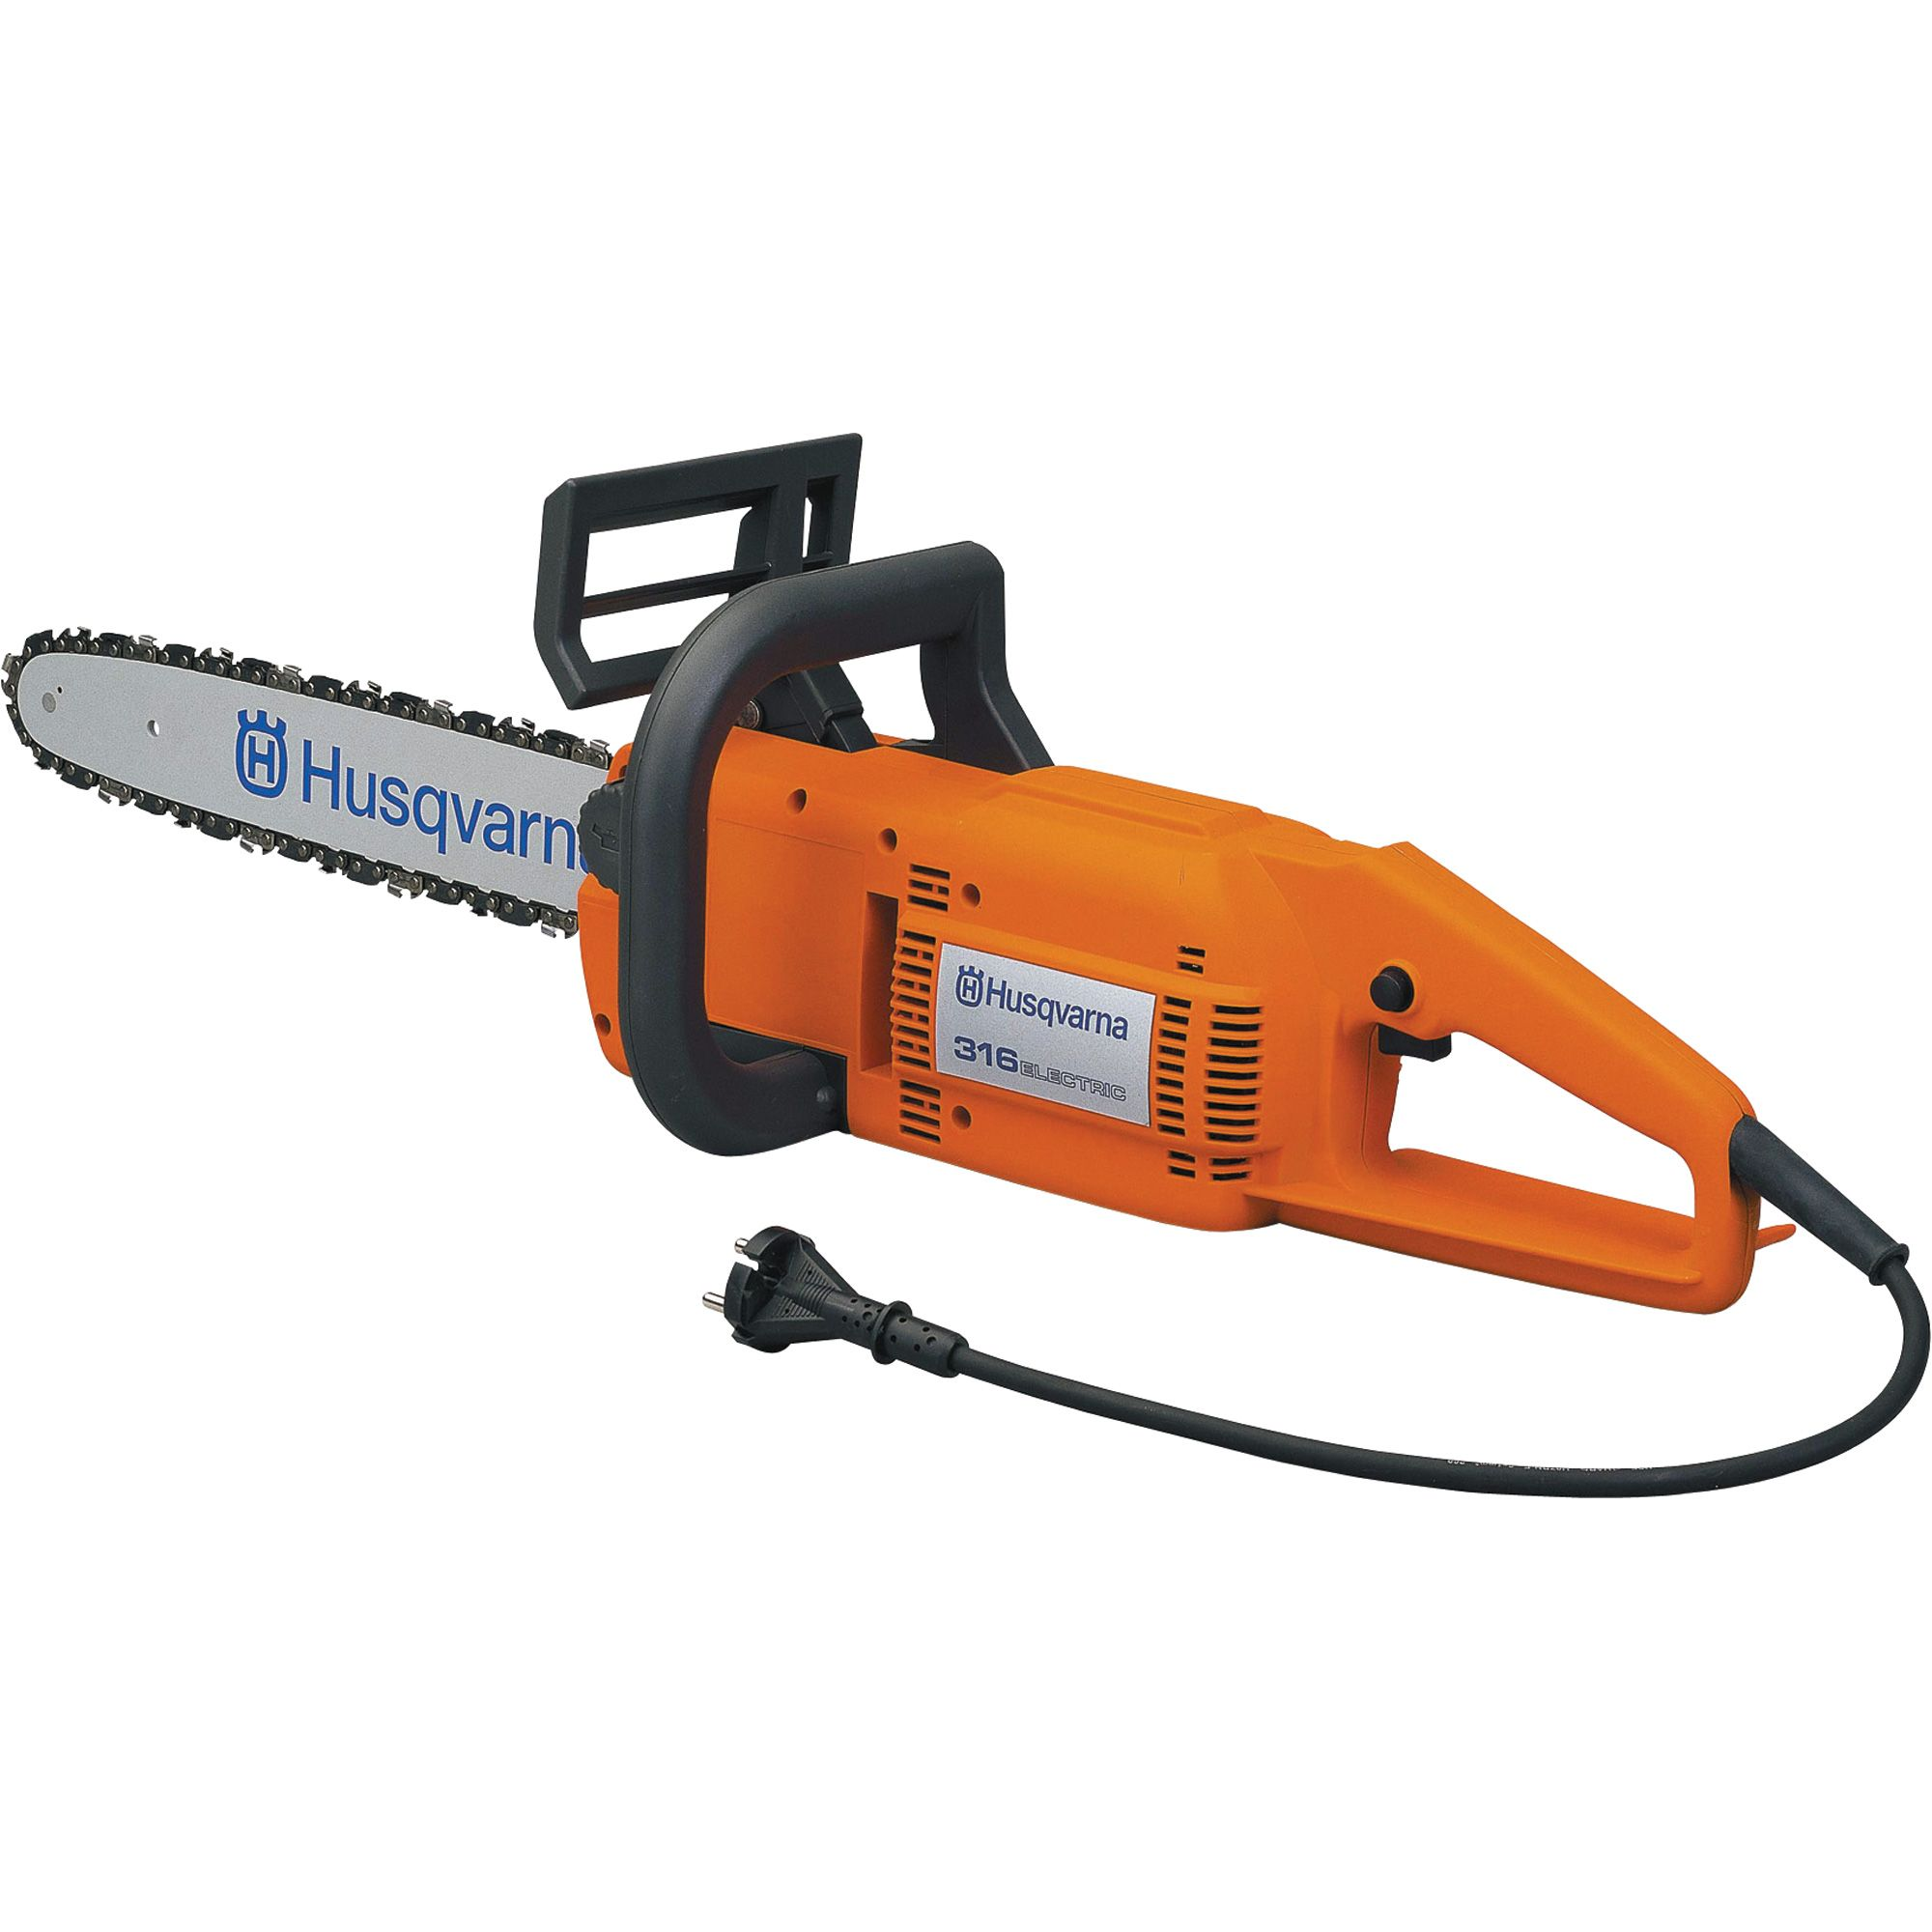 Husqvarna chainsaw electric google search husqvarna pinterest chainsaw greentooth Choice Image